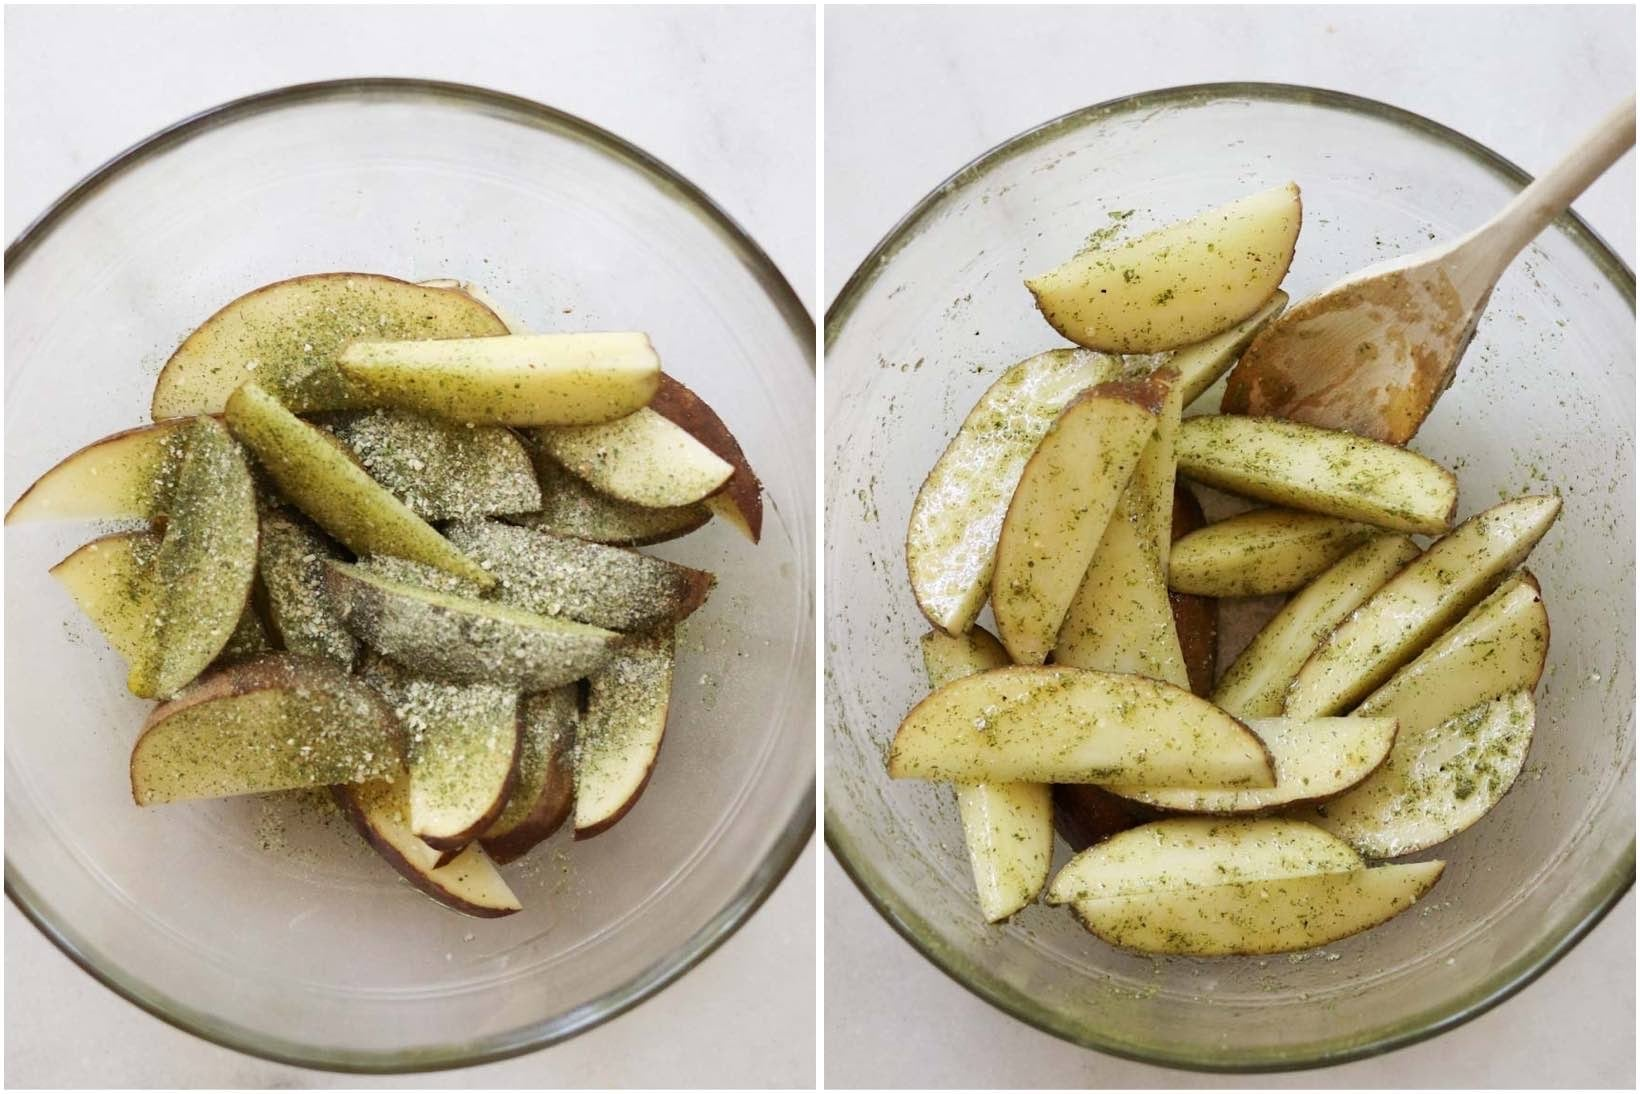 Process shots, showing top down close up of the potato wedges in a glass bowl, tossed with oil and ranch seasoning.